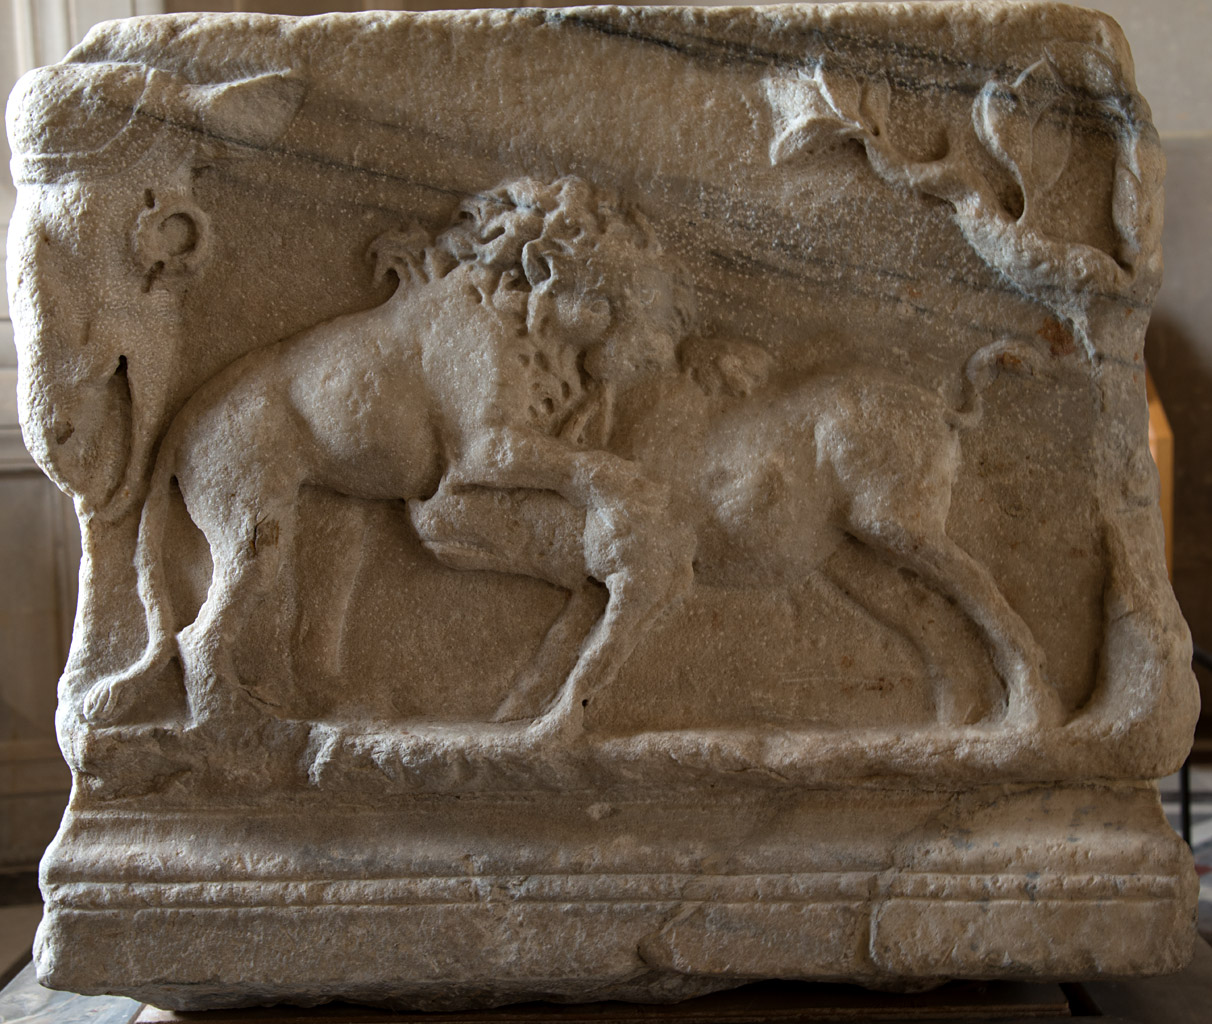 Sarcophagus with a myth of Selene and Endymion (right-side panel). Marble. Mid-2nd cent. CE. Asia Minor production (region of Smyrna). Inv. No. Ma 1384. Paris, Louvre Museum